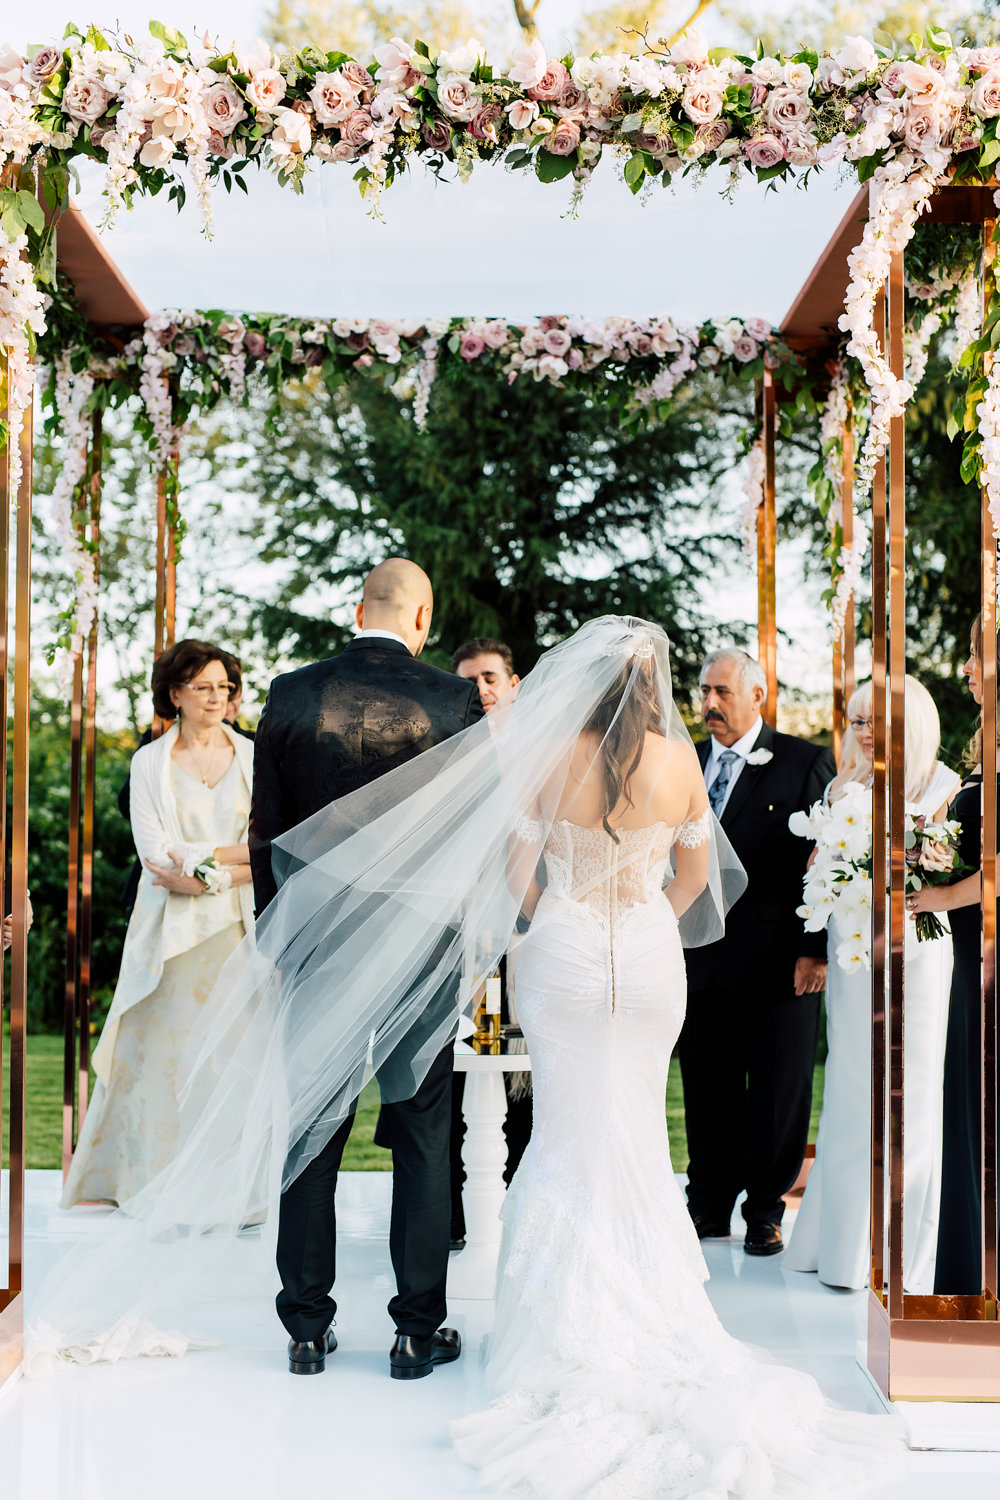 Outdoor wedding ceremony with pink roses